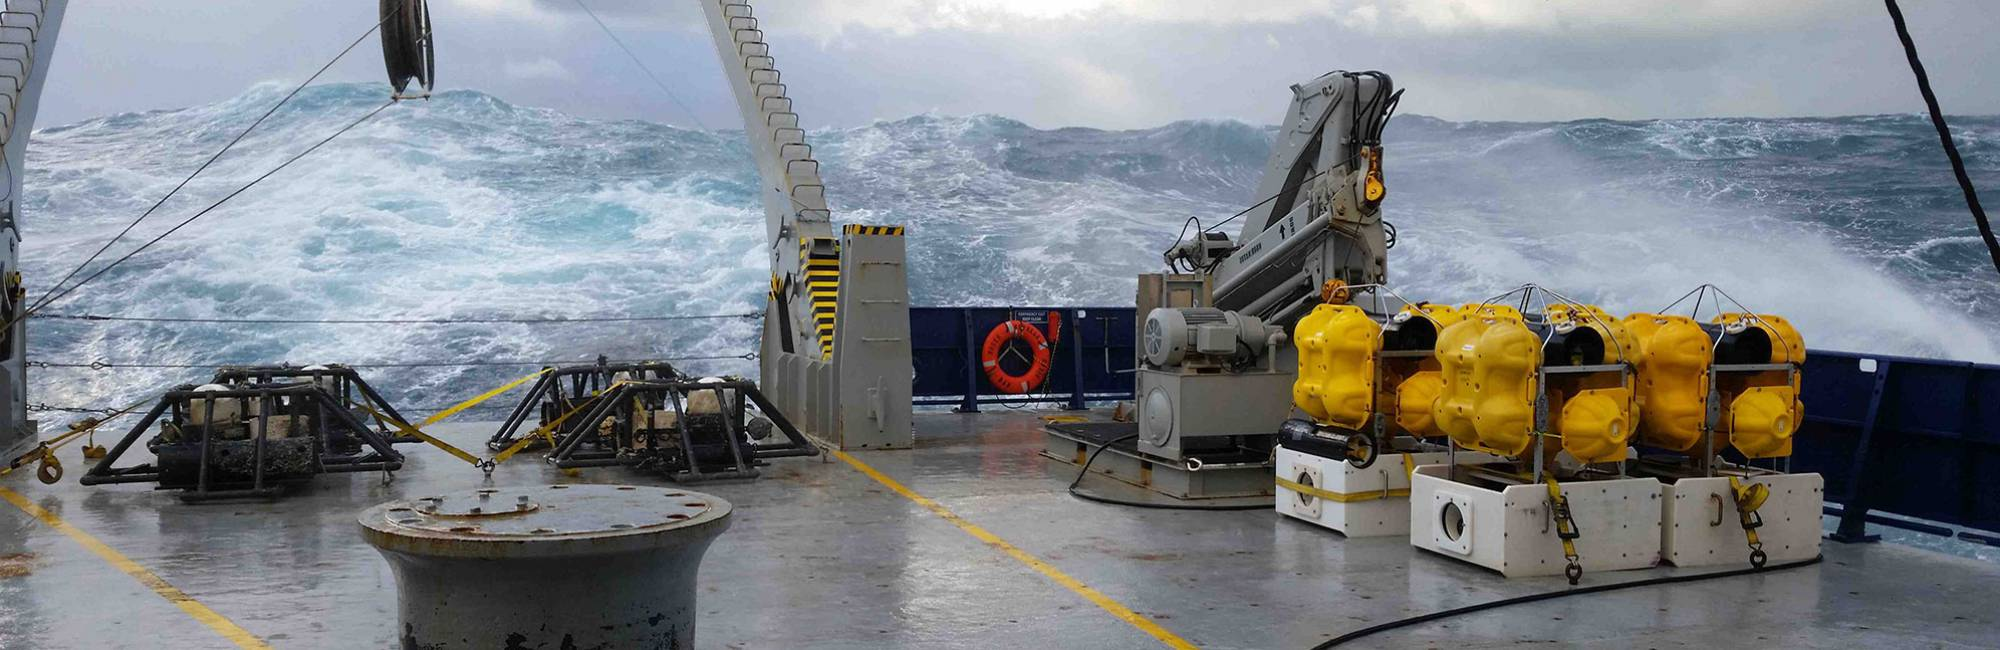 View of tumultuous wave from a boat